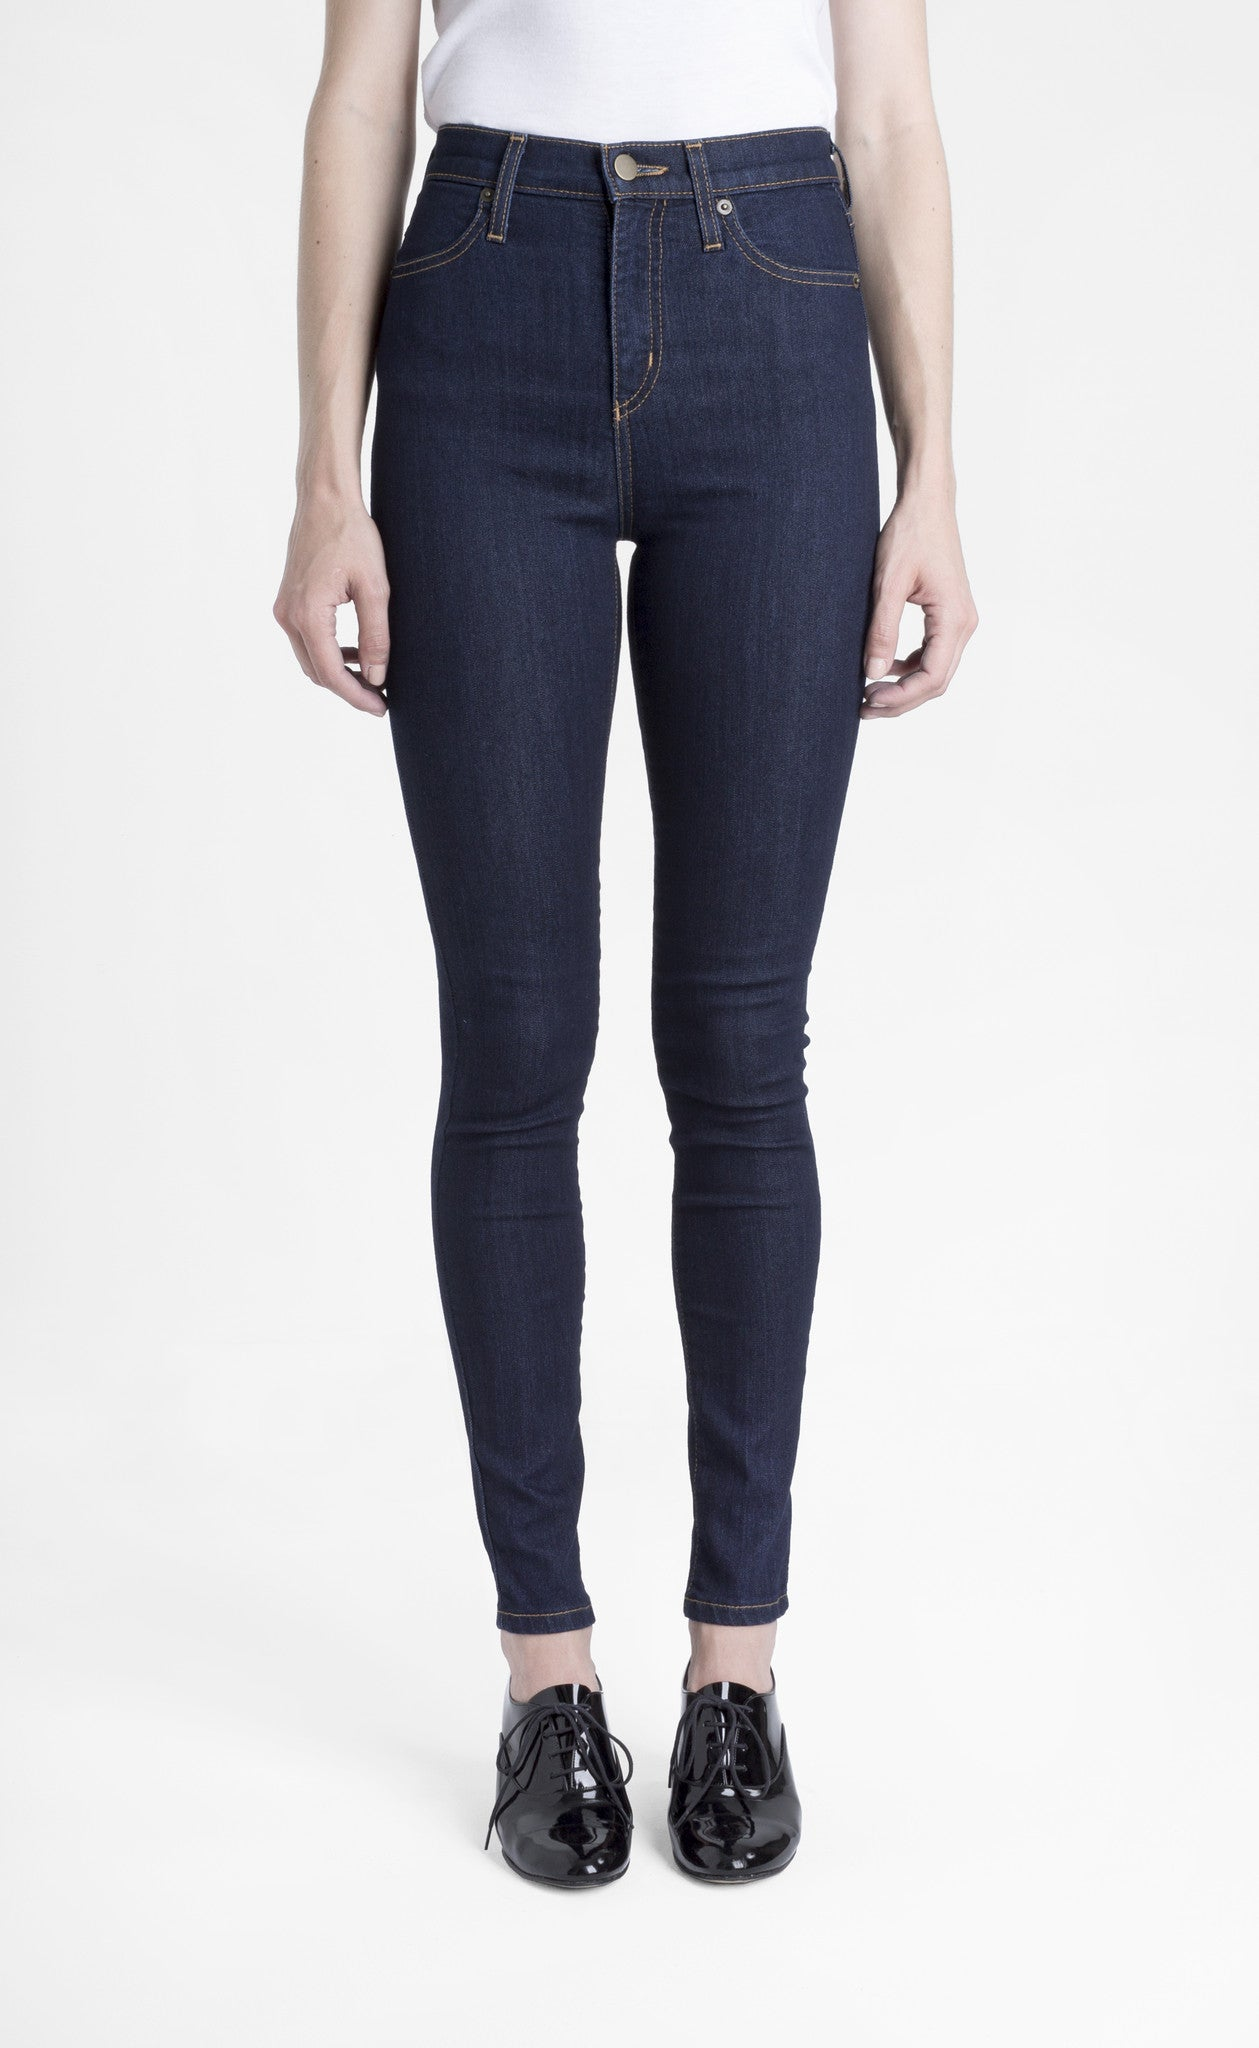 Iris Denim // Bad Reputation High Waist Jeans